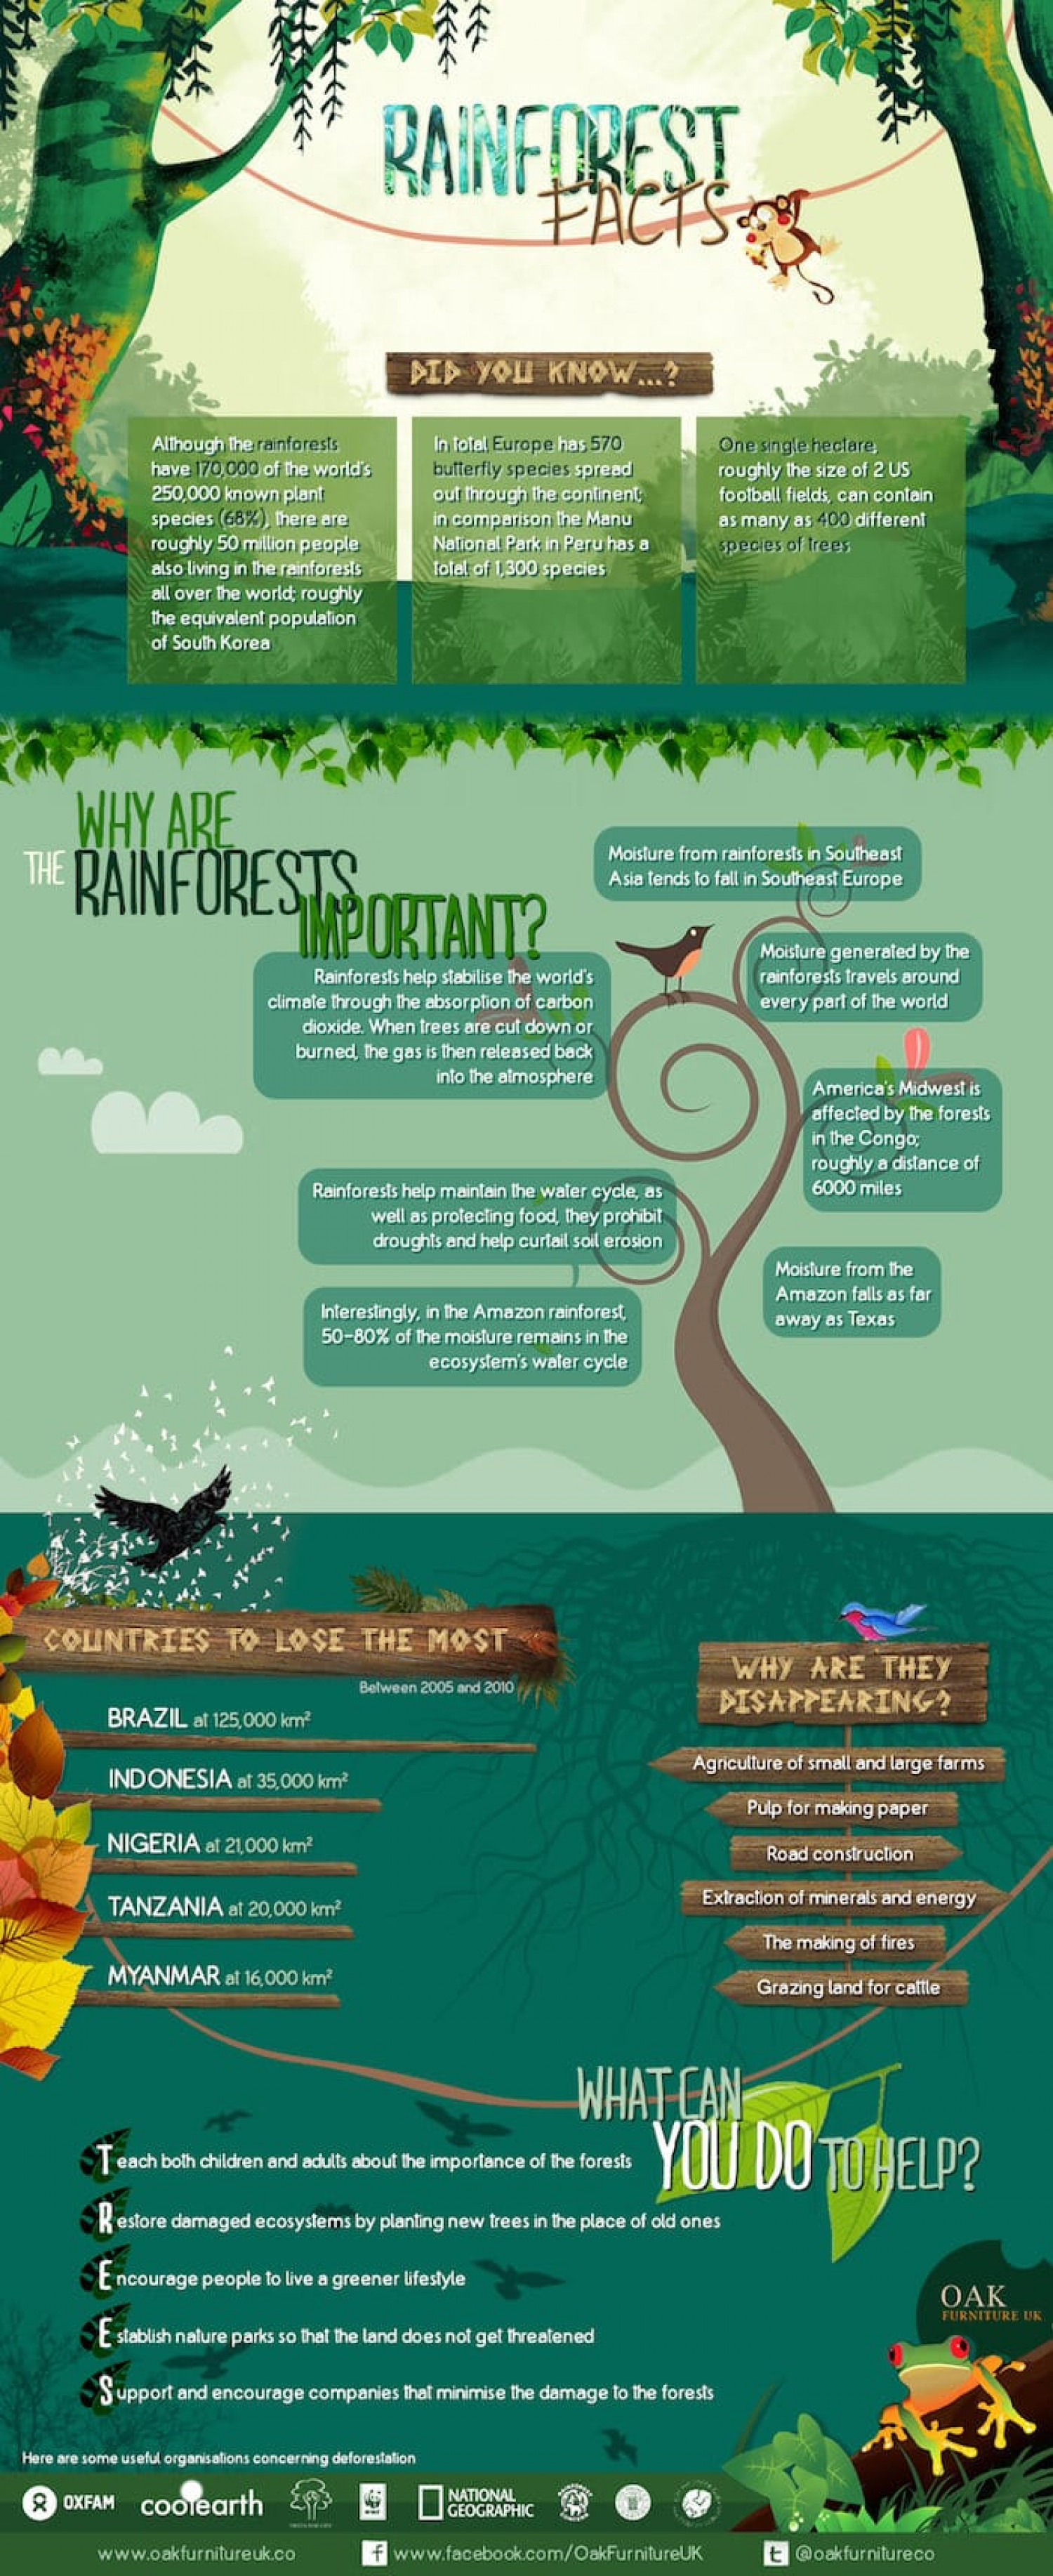 Time to Learn a Few Rainforest Facts Infographic